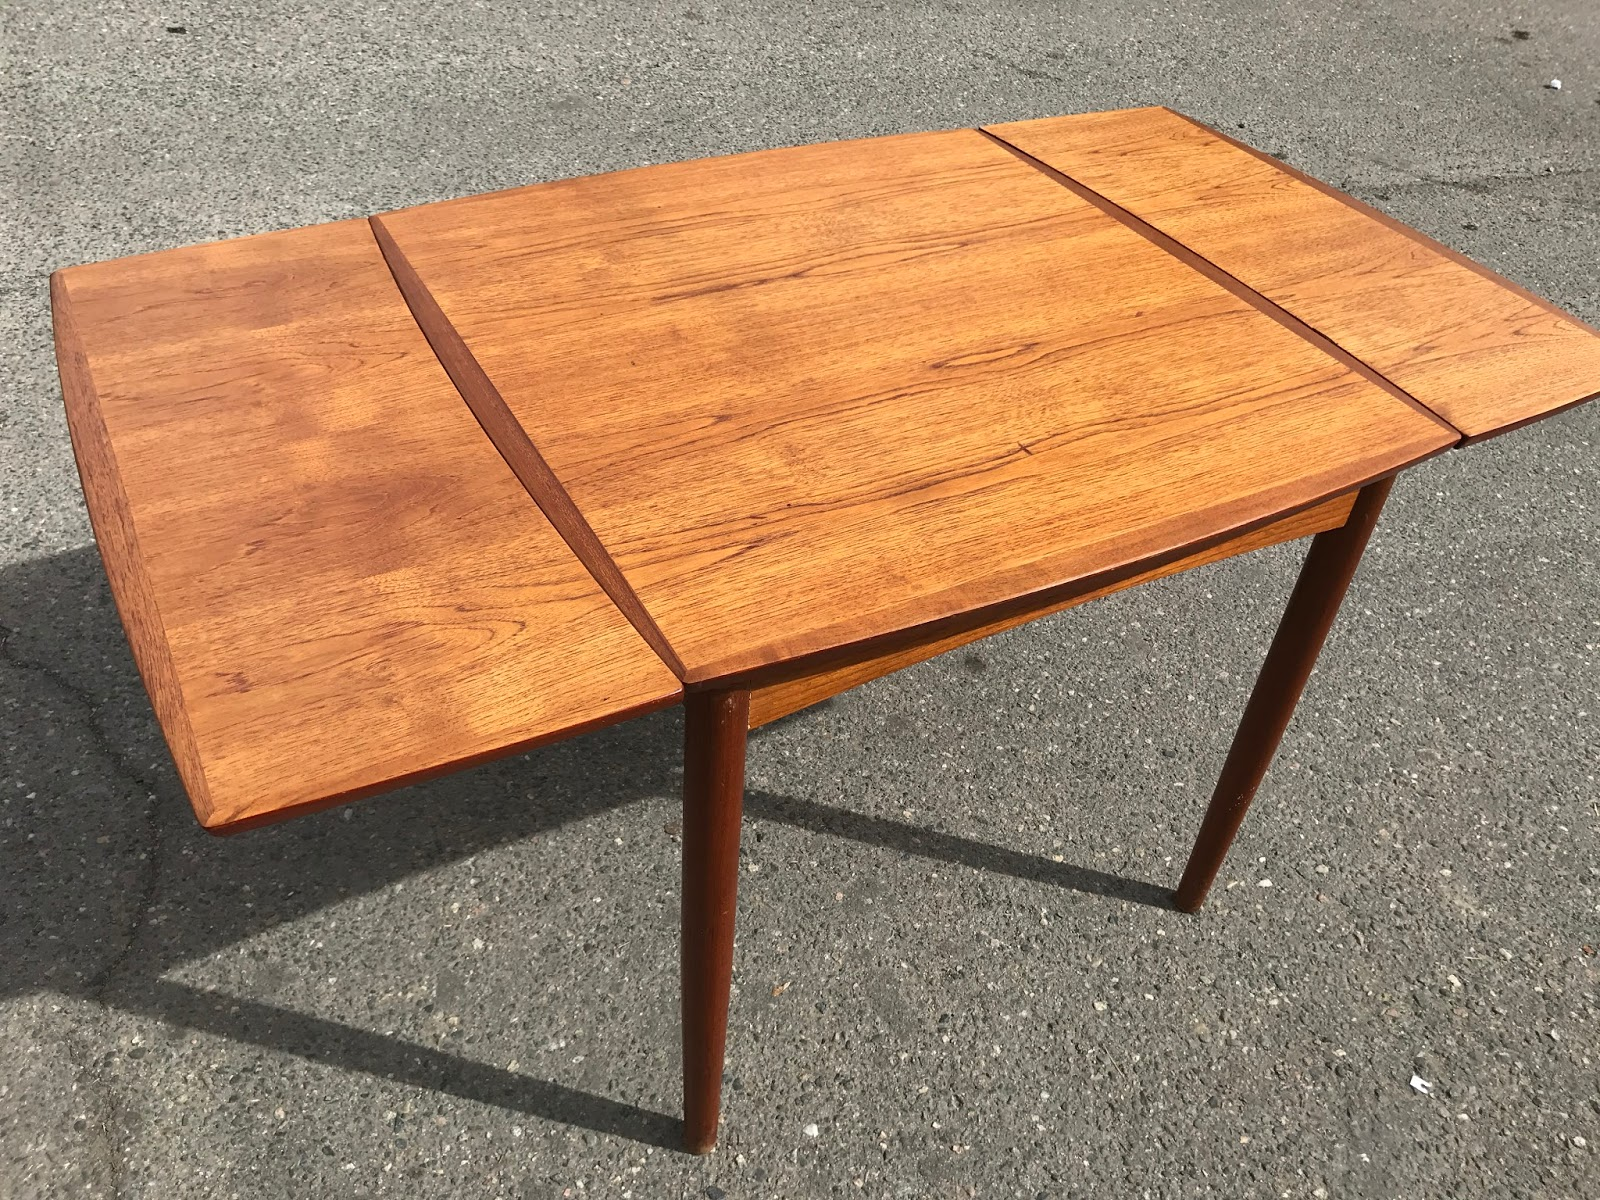 Danish Teak Mid Century Table By IDG   2 Leaves   SOLD